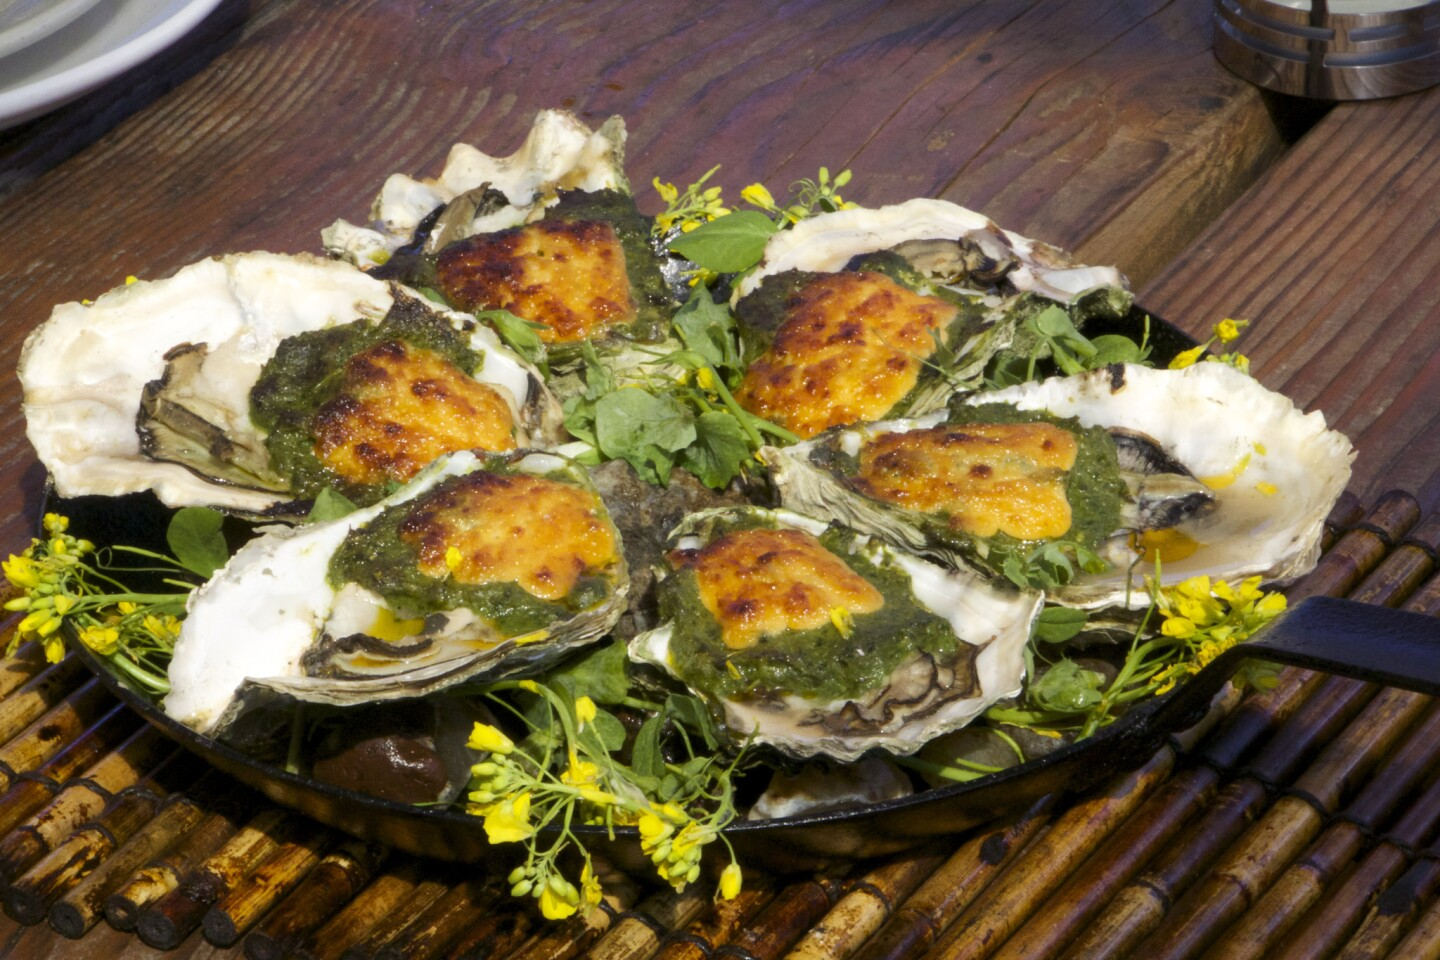 Local Oregon oysters, grilled with cheese and spinach from the Schooner in Tillamook, Ore.